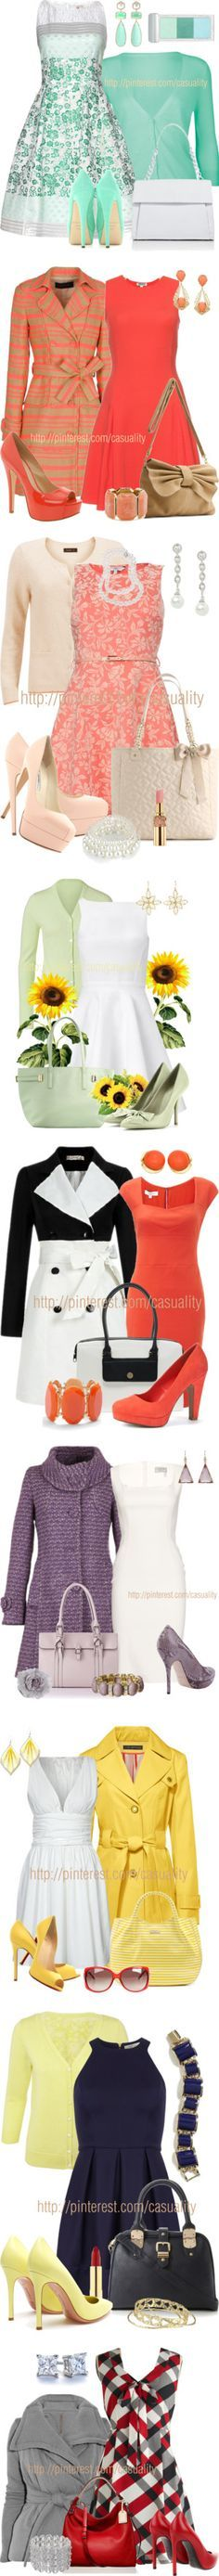 Spring colors/styles ♥✤ | Keep the Glamour | BeStayBeautiful